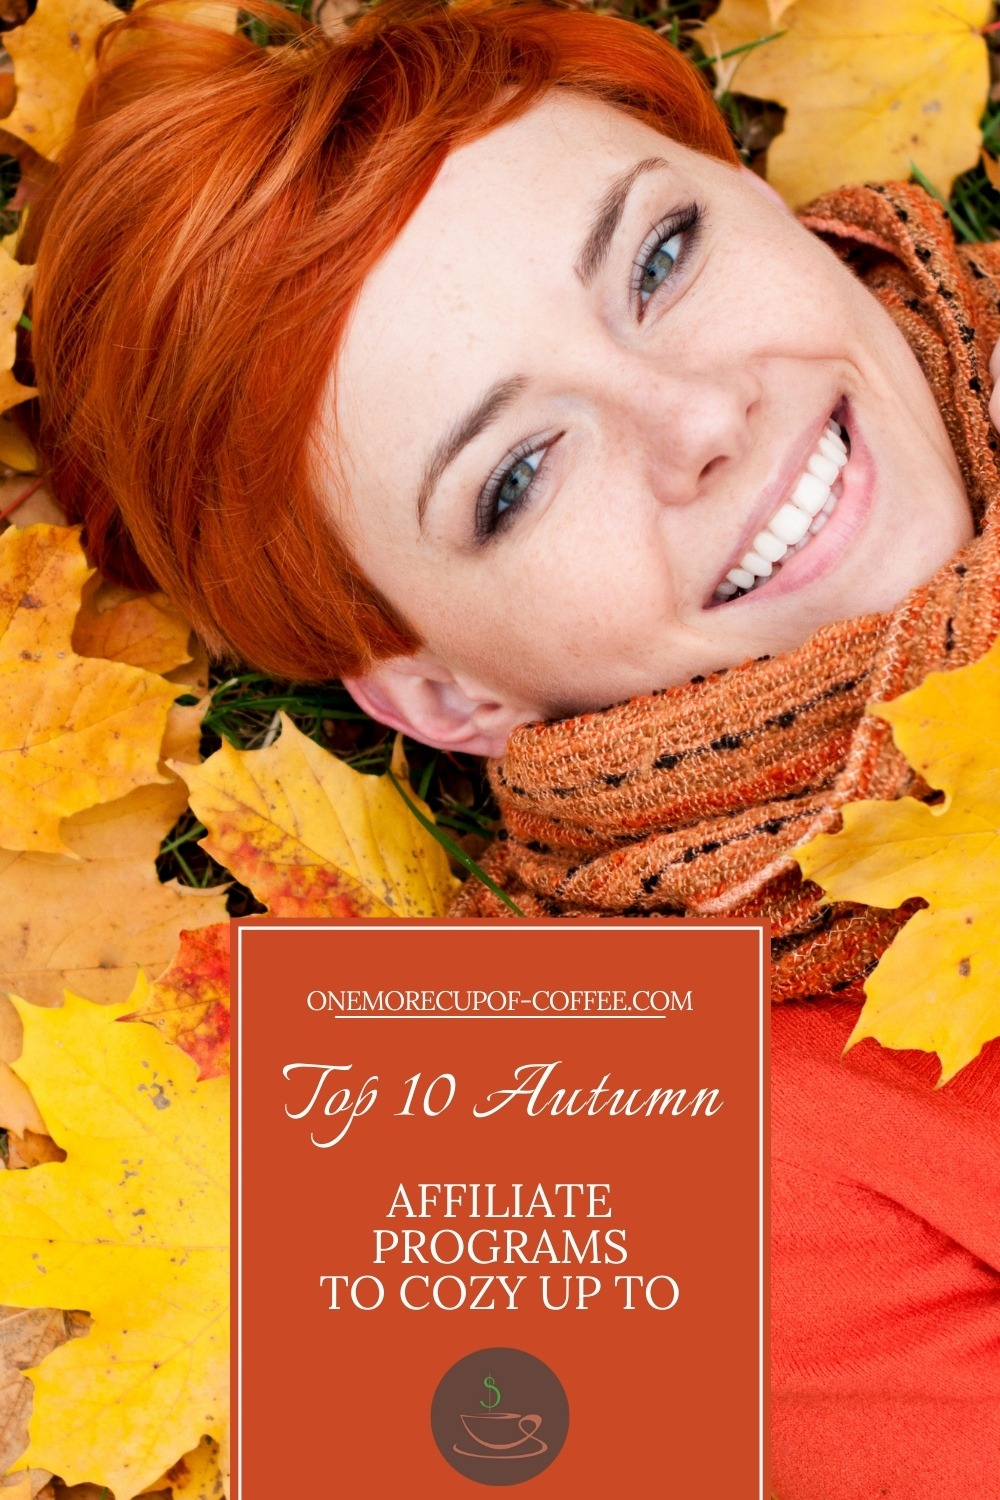 """top view image of a smiling woman laying down on autumn leaves wearing a red sweater and orange scarf; with text overlay """"Top 10 Autumn Affiliate Programs To Cozy Up To"""""""